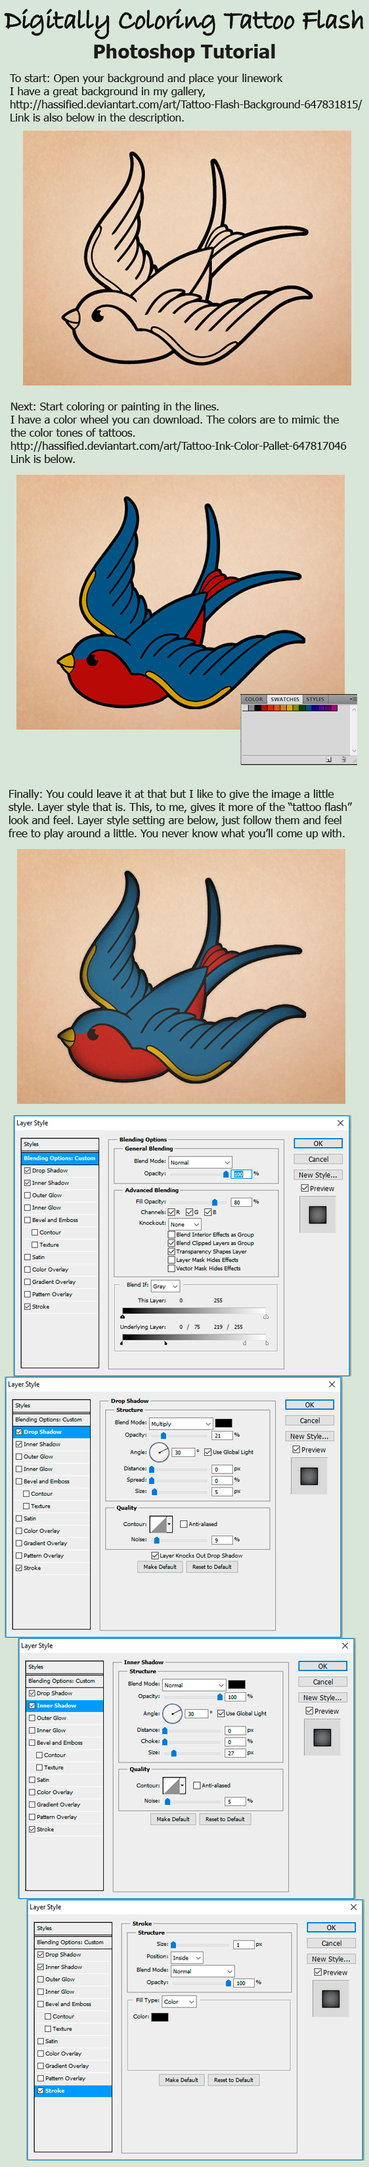 Digitally Coloring Tattoo Flash Tutorial by hassified